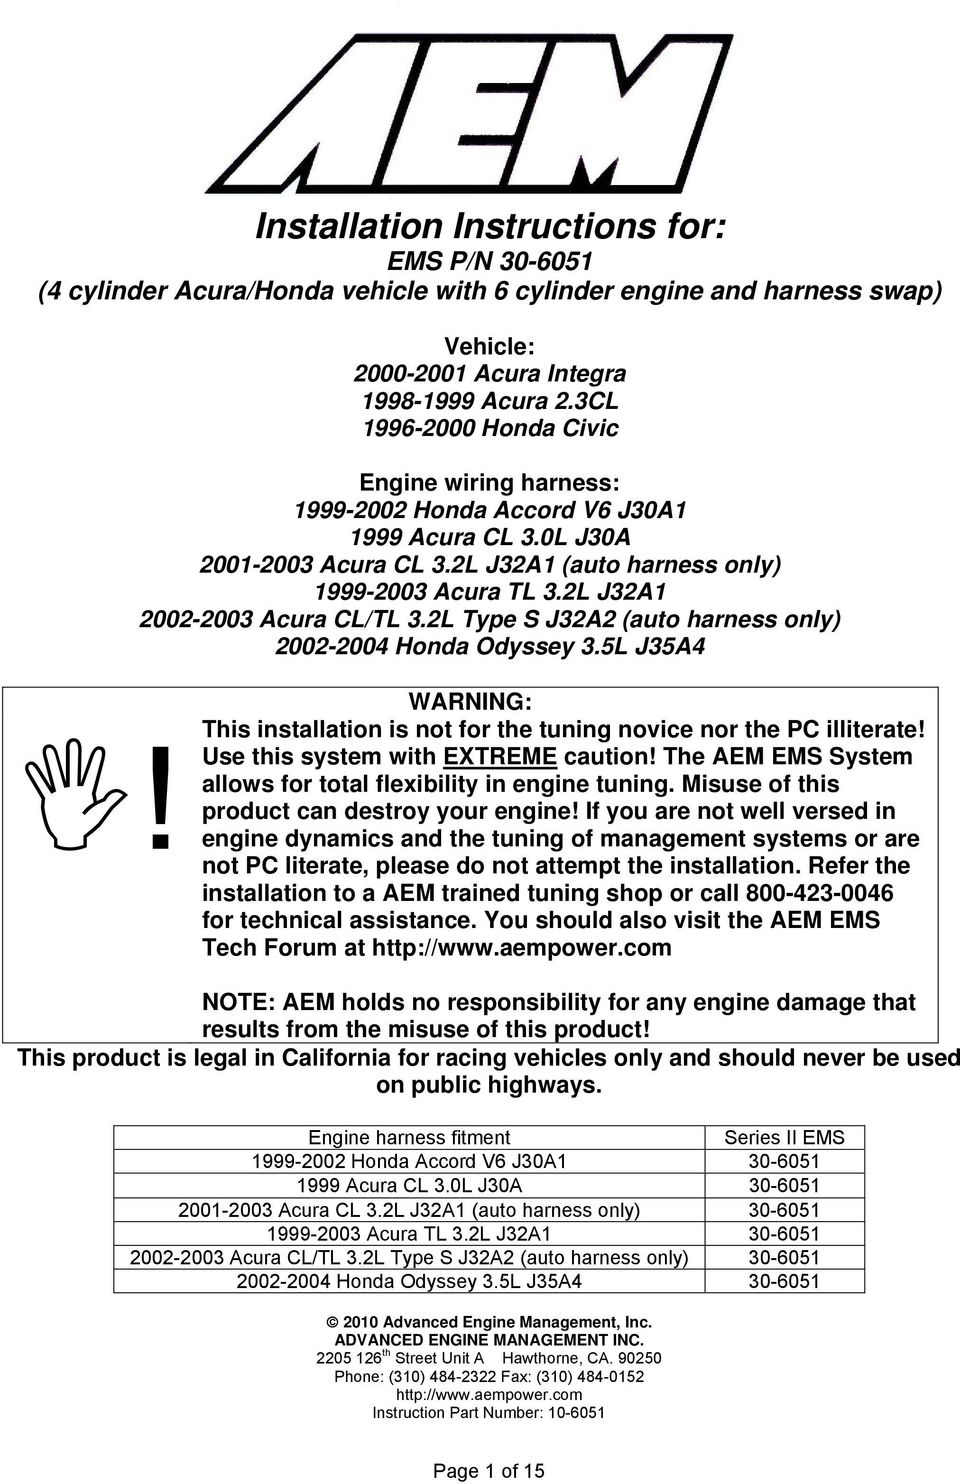 Installation Instructions For Ems P N 4 Cylinder Acura Honda Automotive Wiring Harness Repair Also With 2000 Civic 2l J32a1 2002 2003 Cl Tl 32l Type S J32a2 Auto